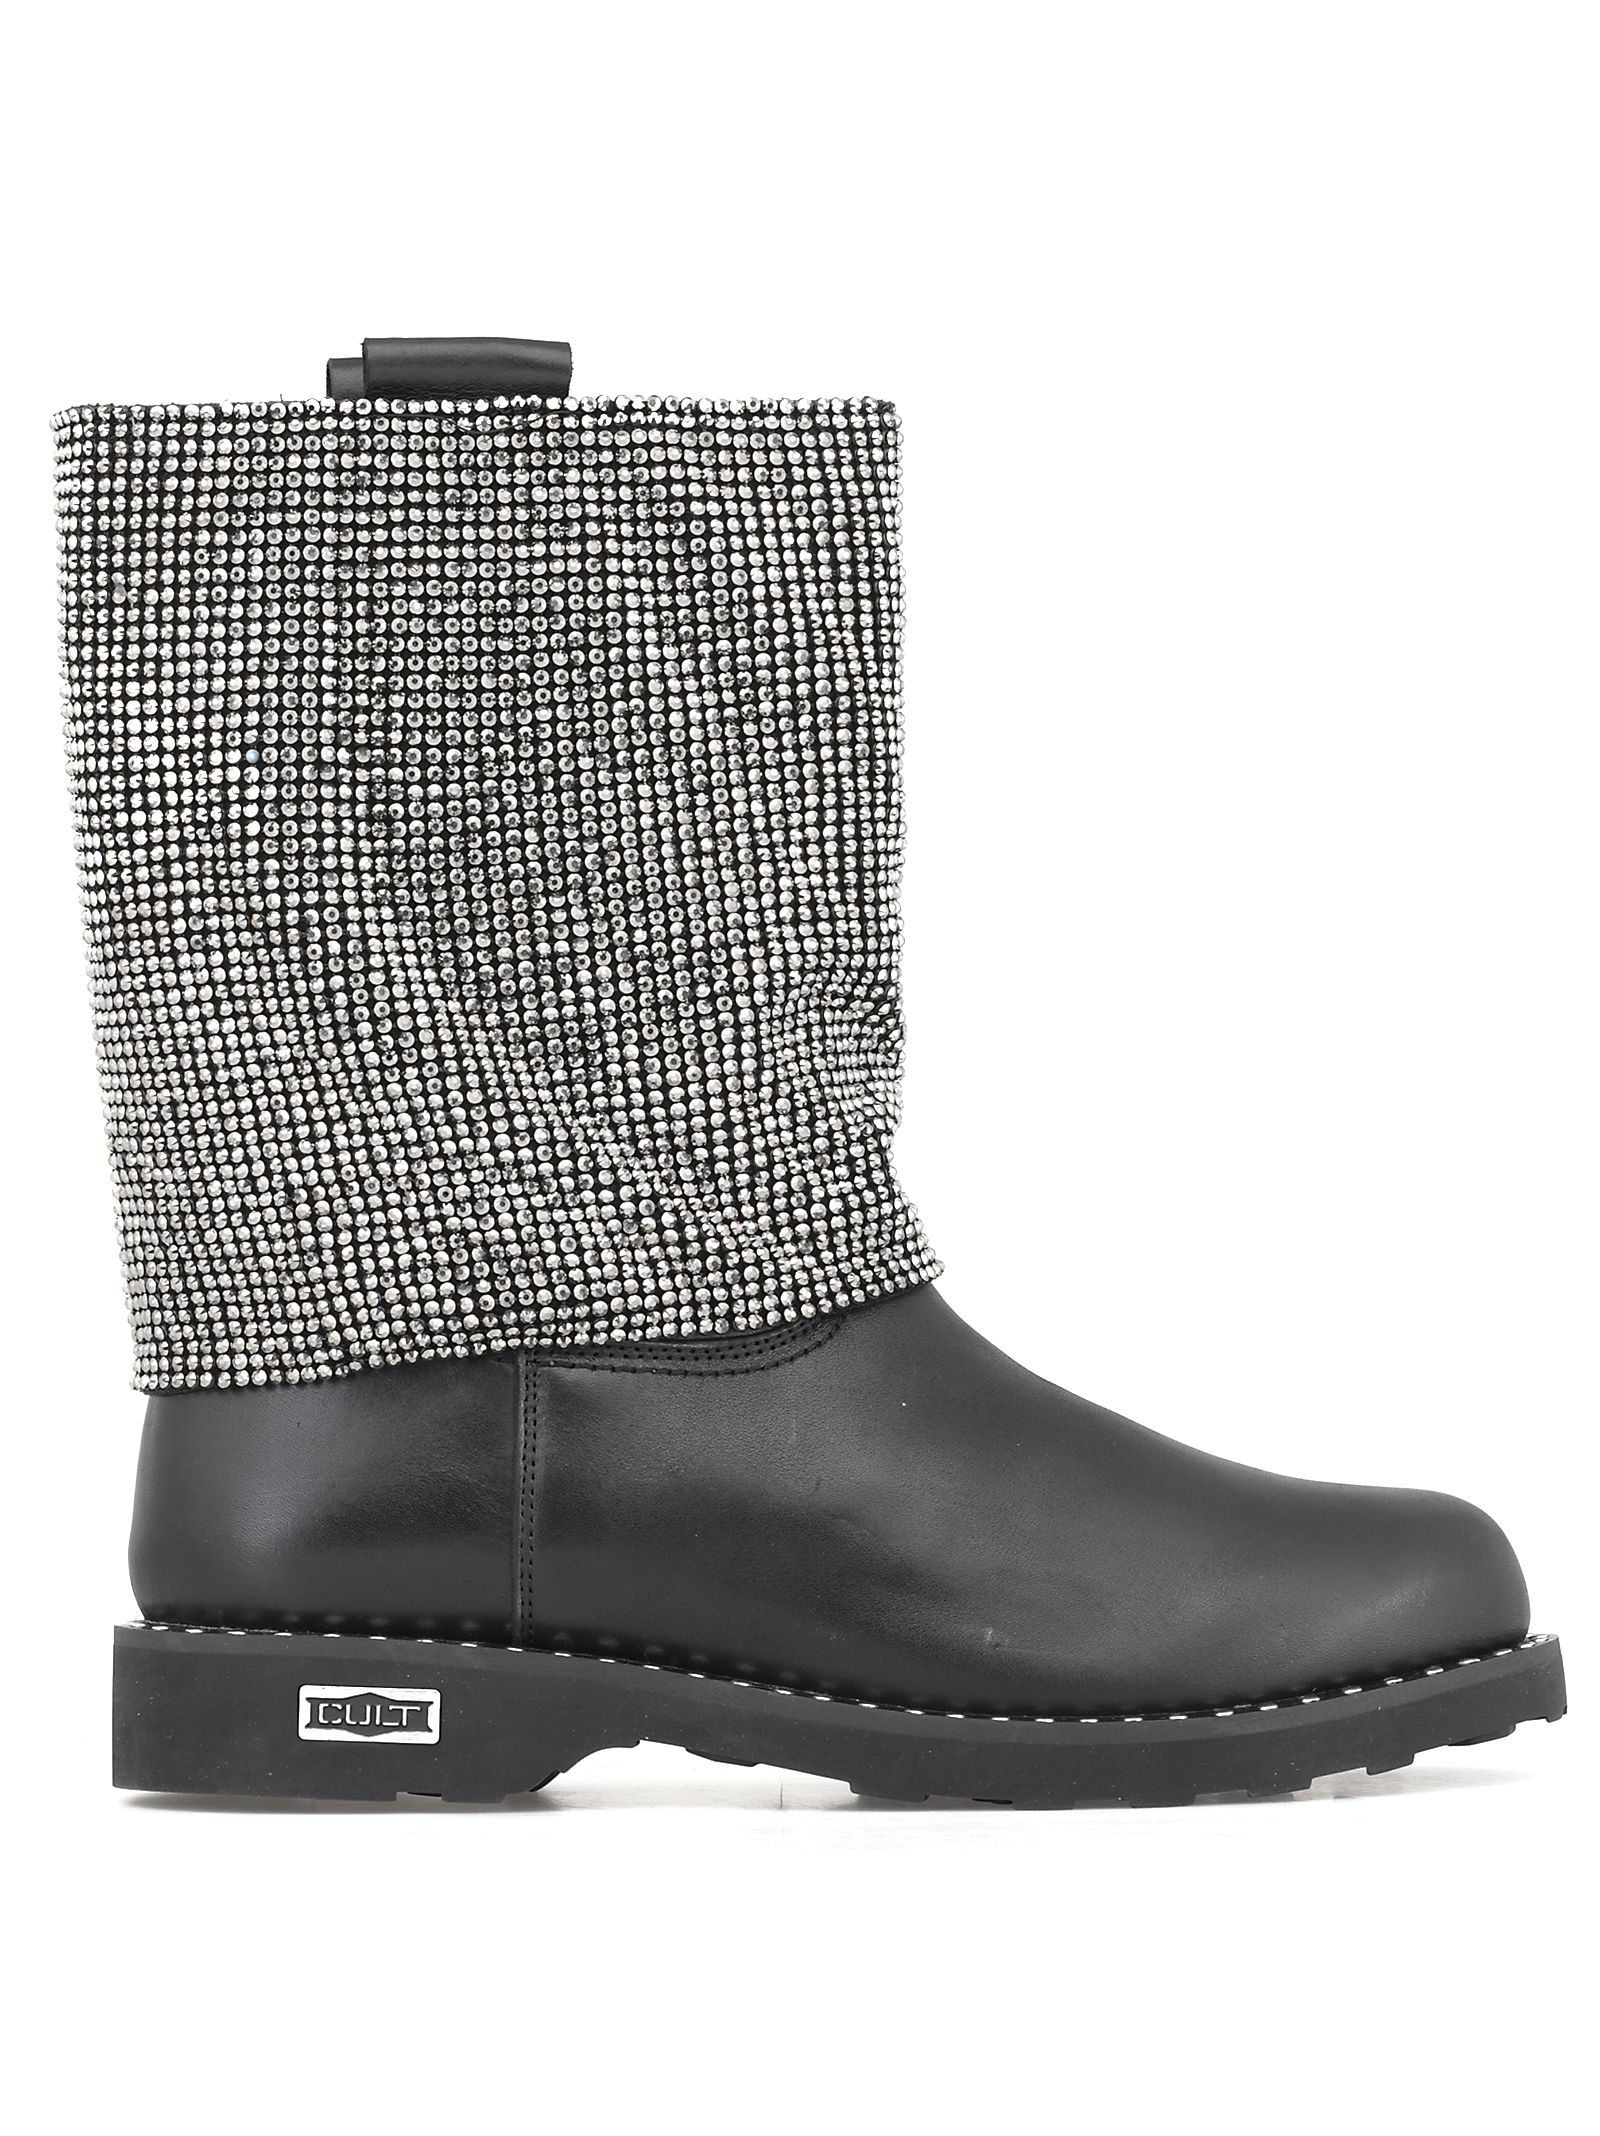 CULT Leather Boot in Black